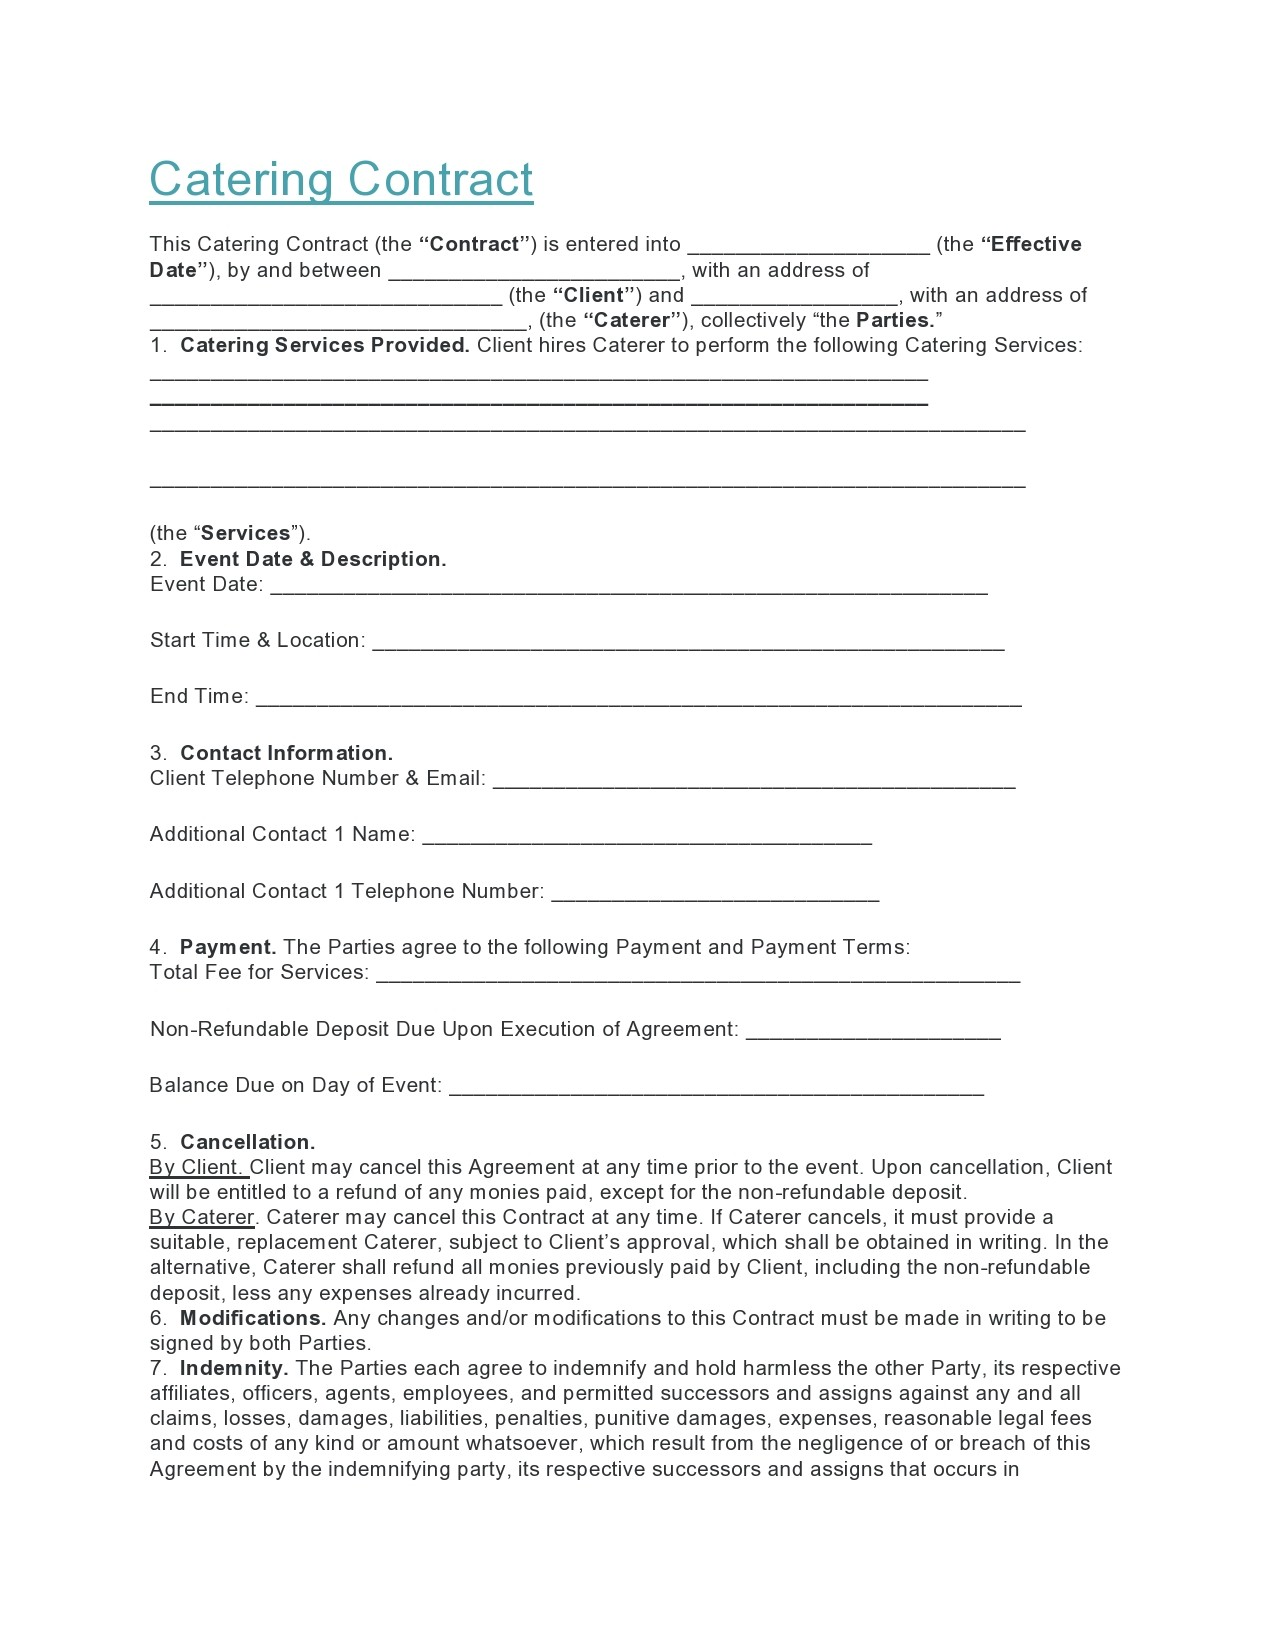 Free catering contract 09